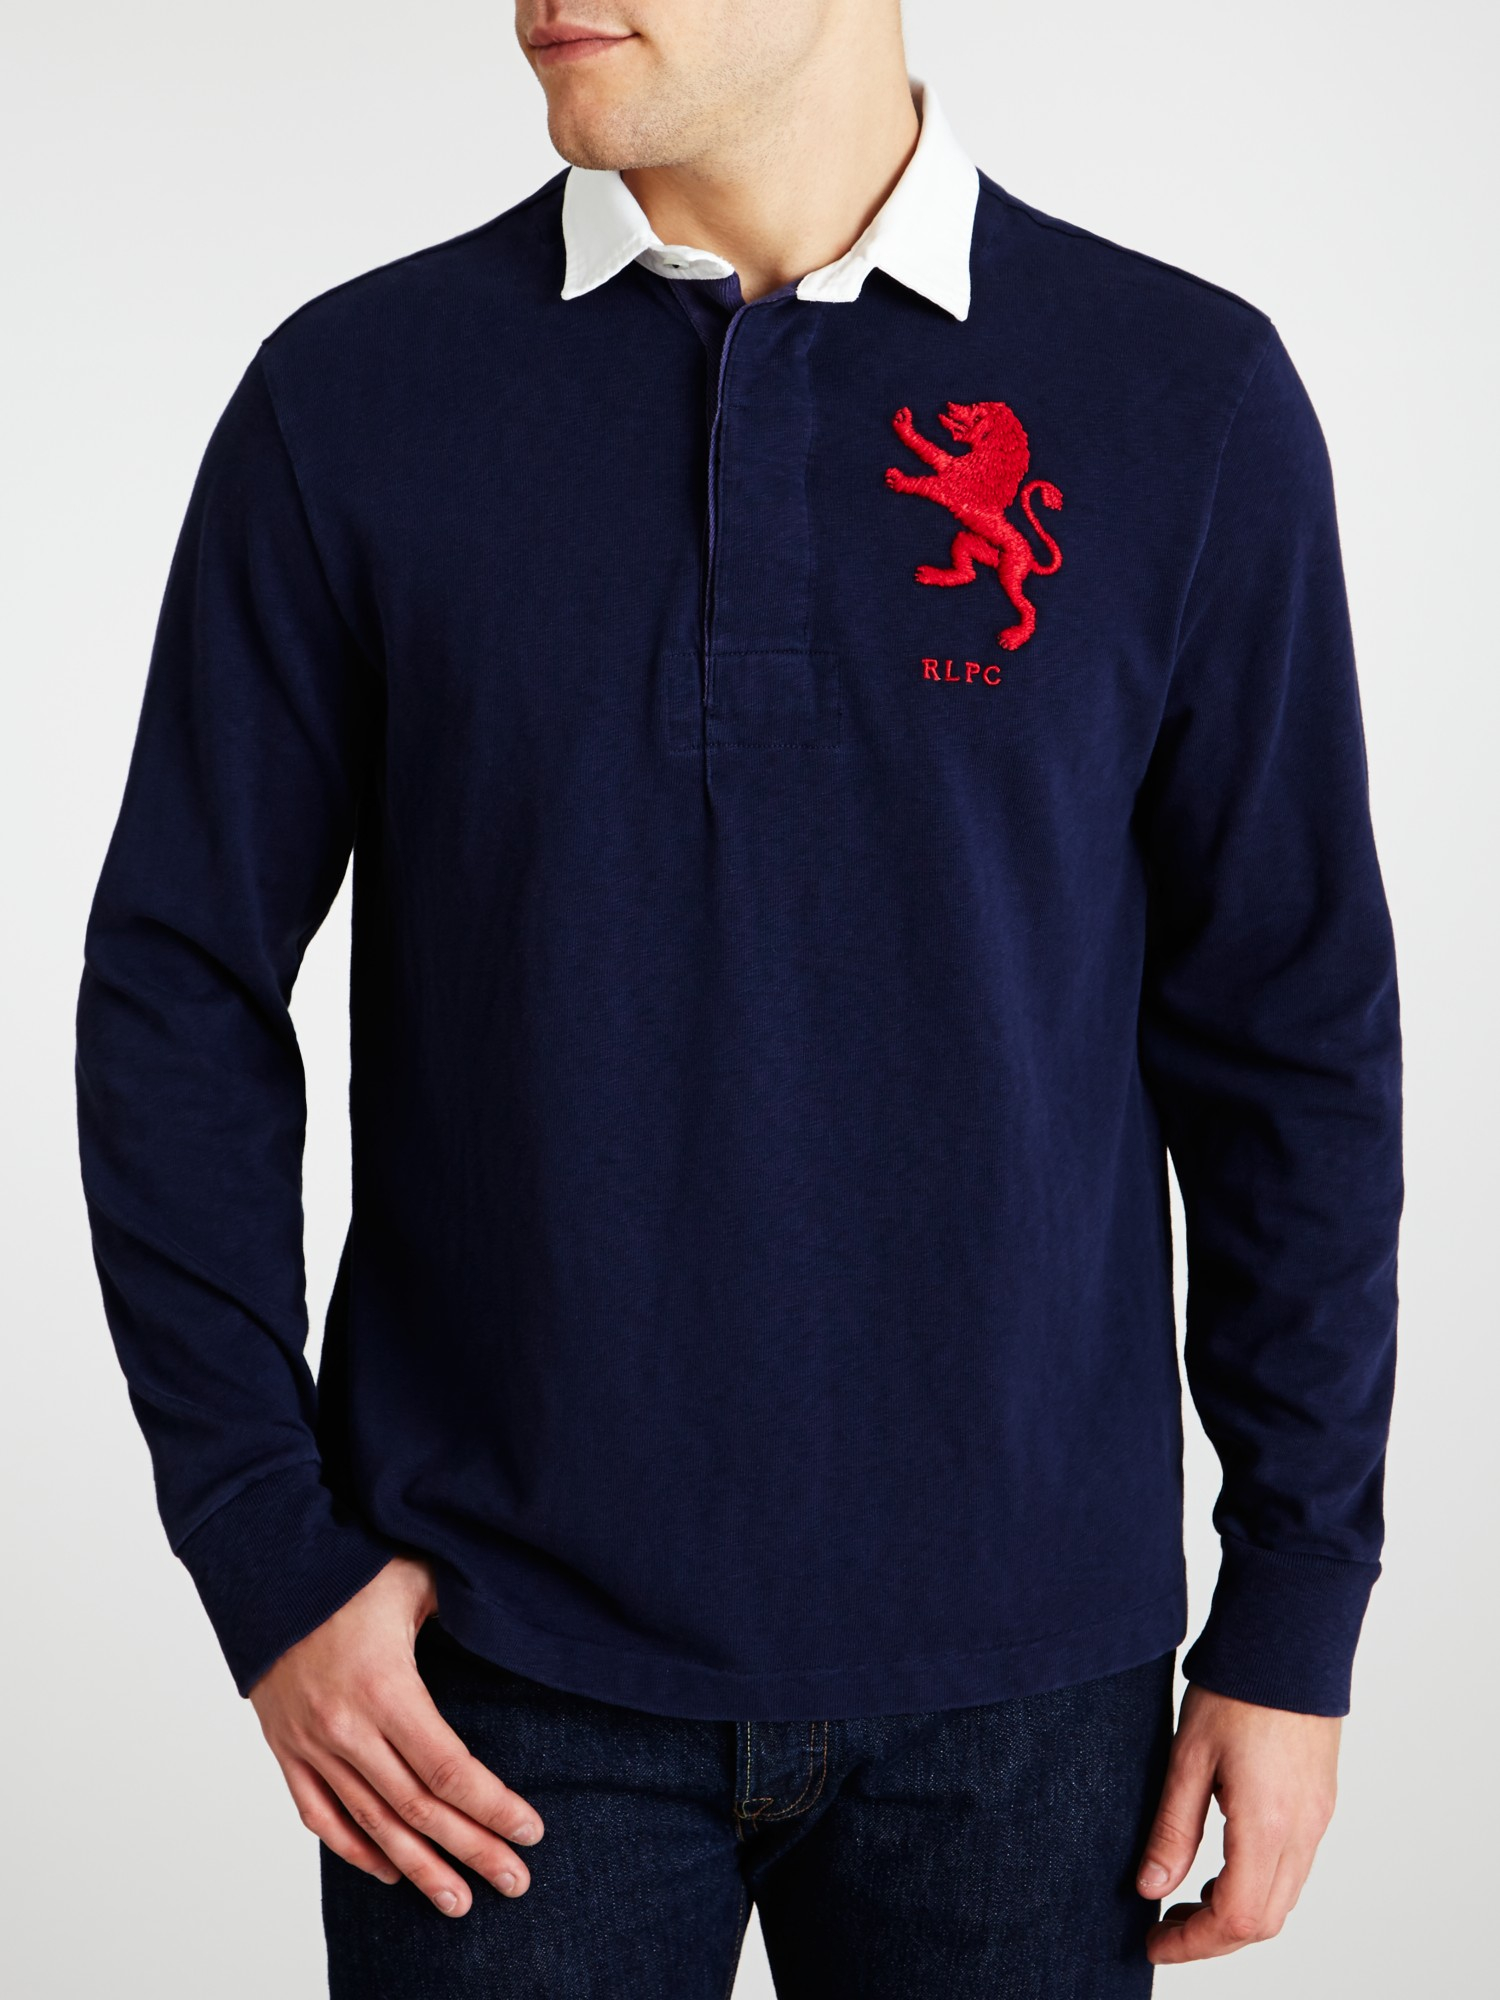 Polo T Shirts With Lion Logo